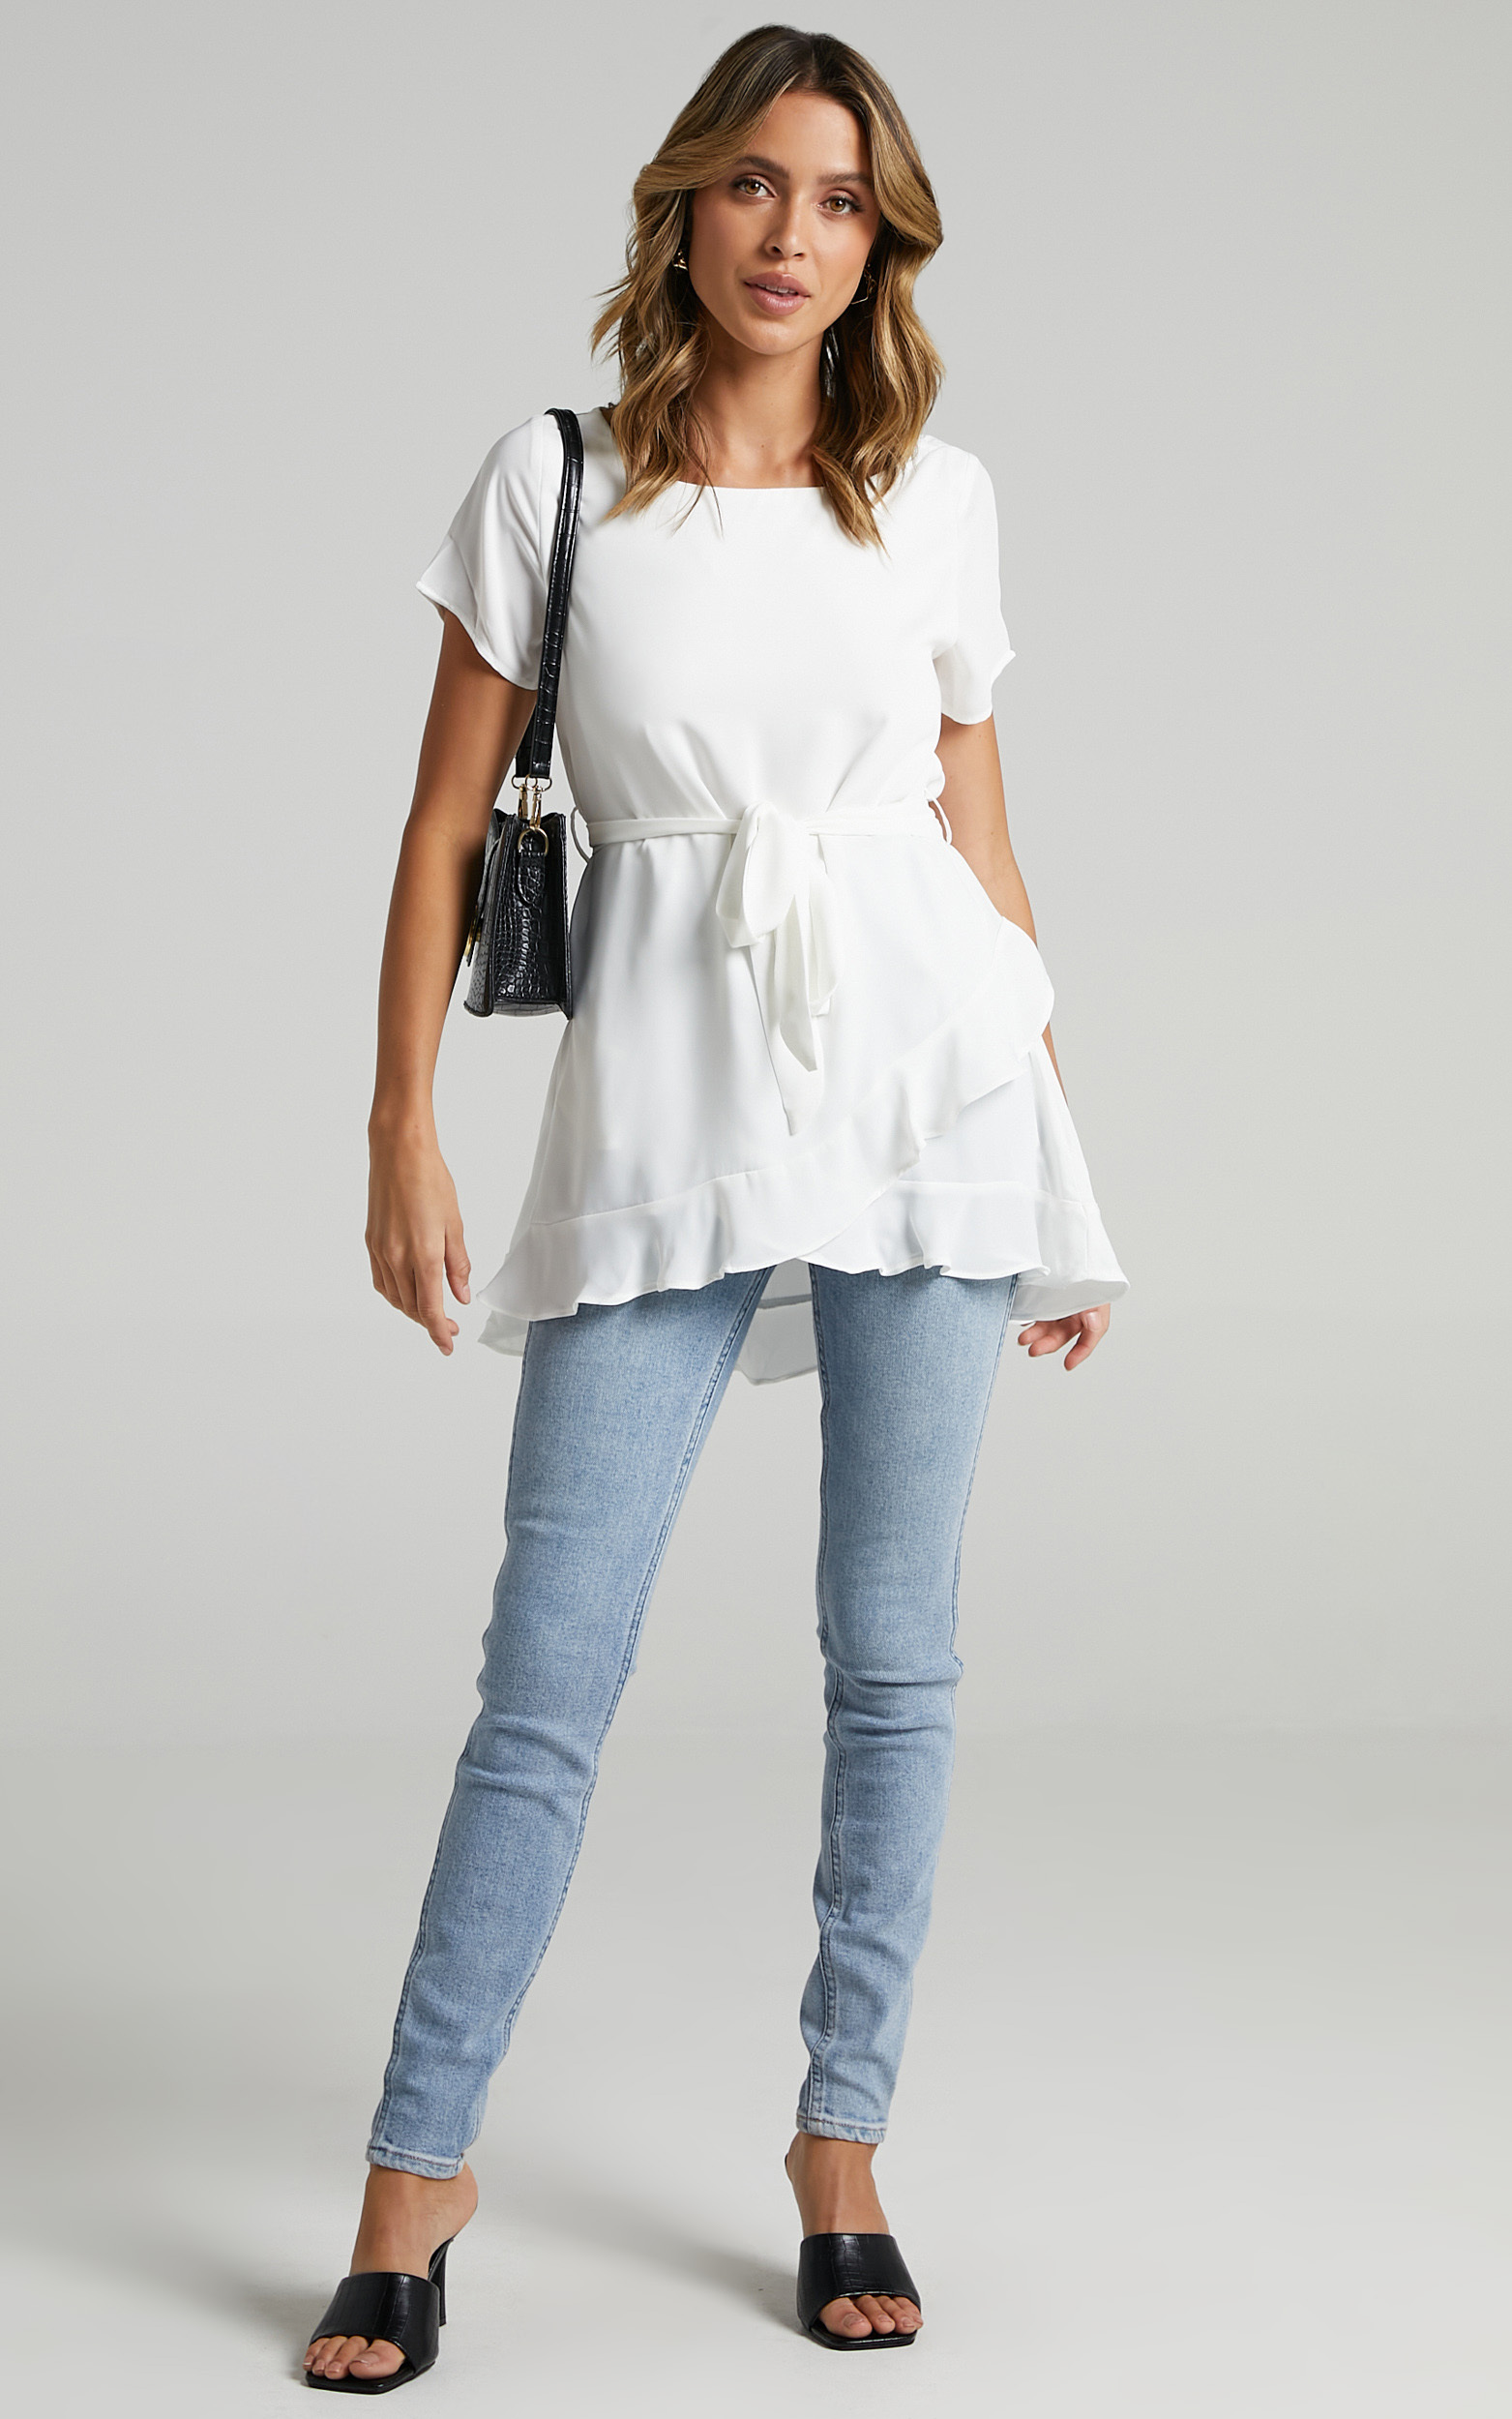 Work Something Out top in White - 16, WHT1, hi-res image number null